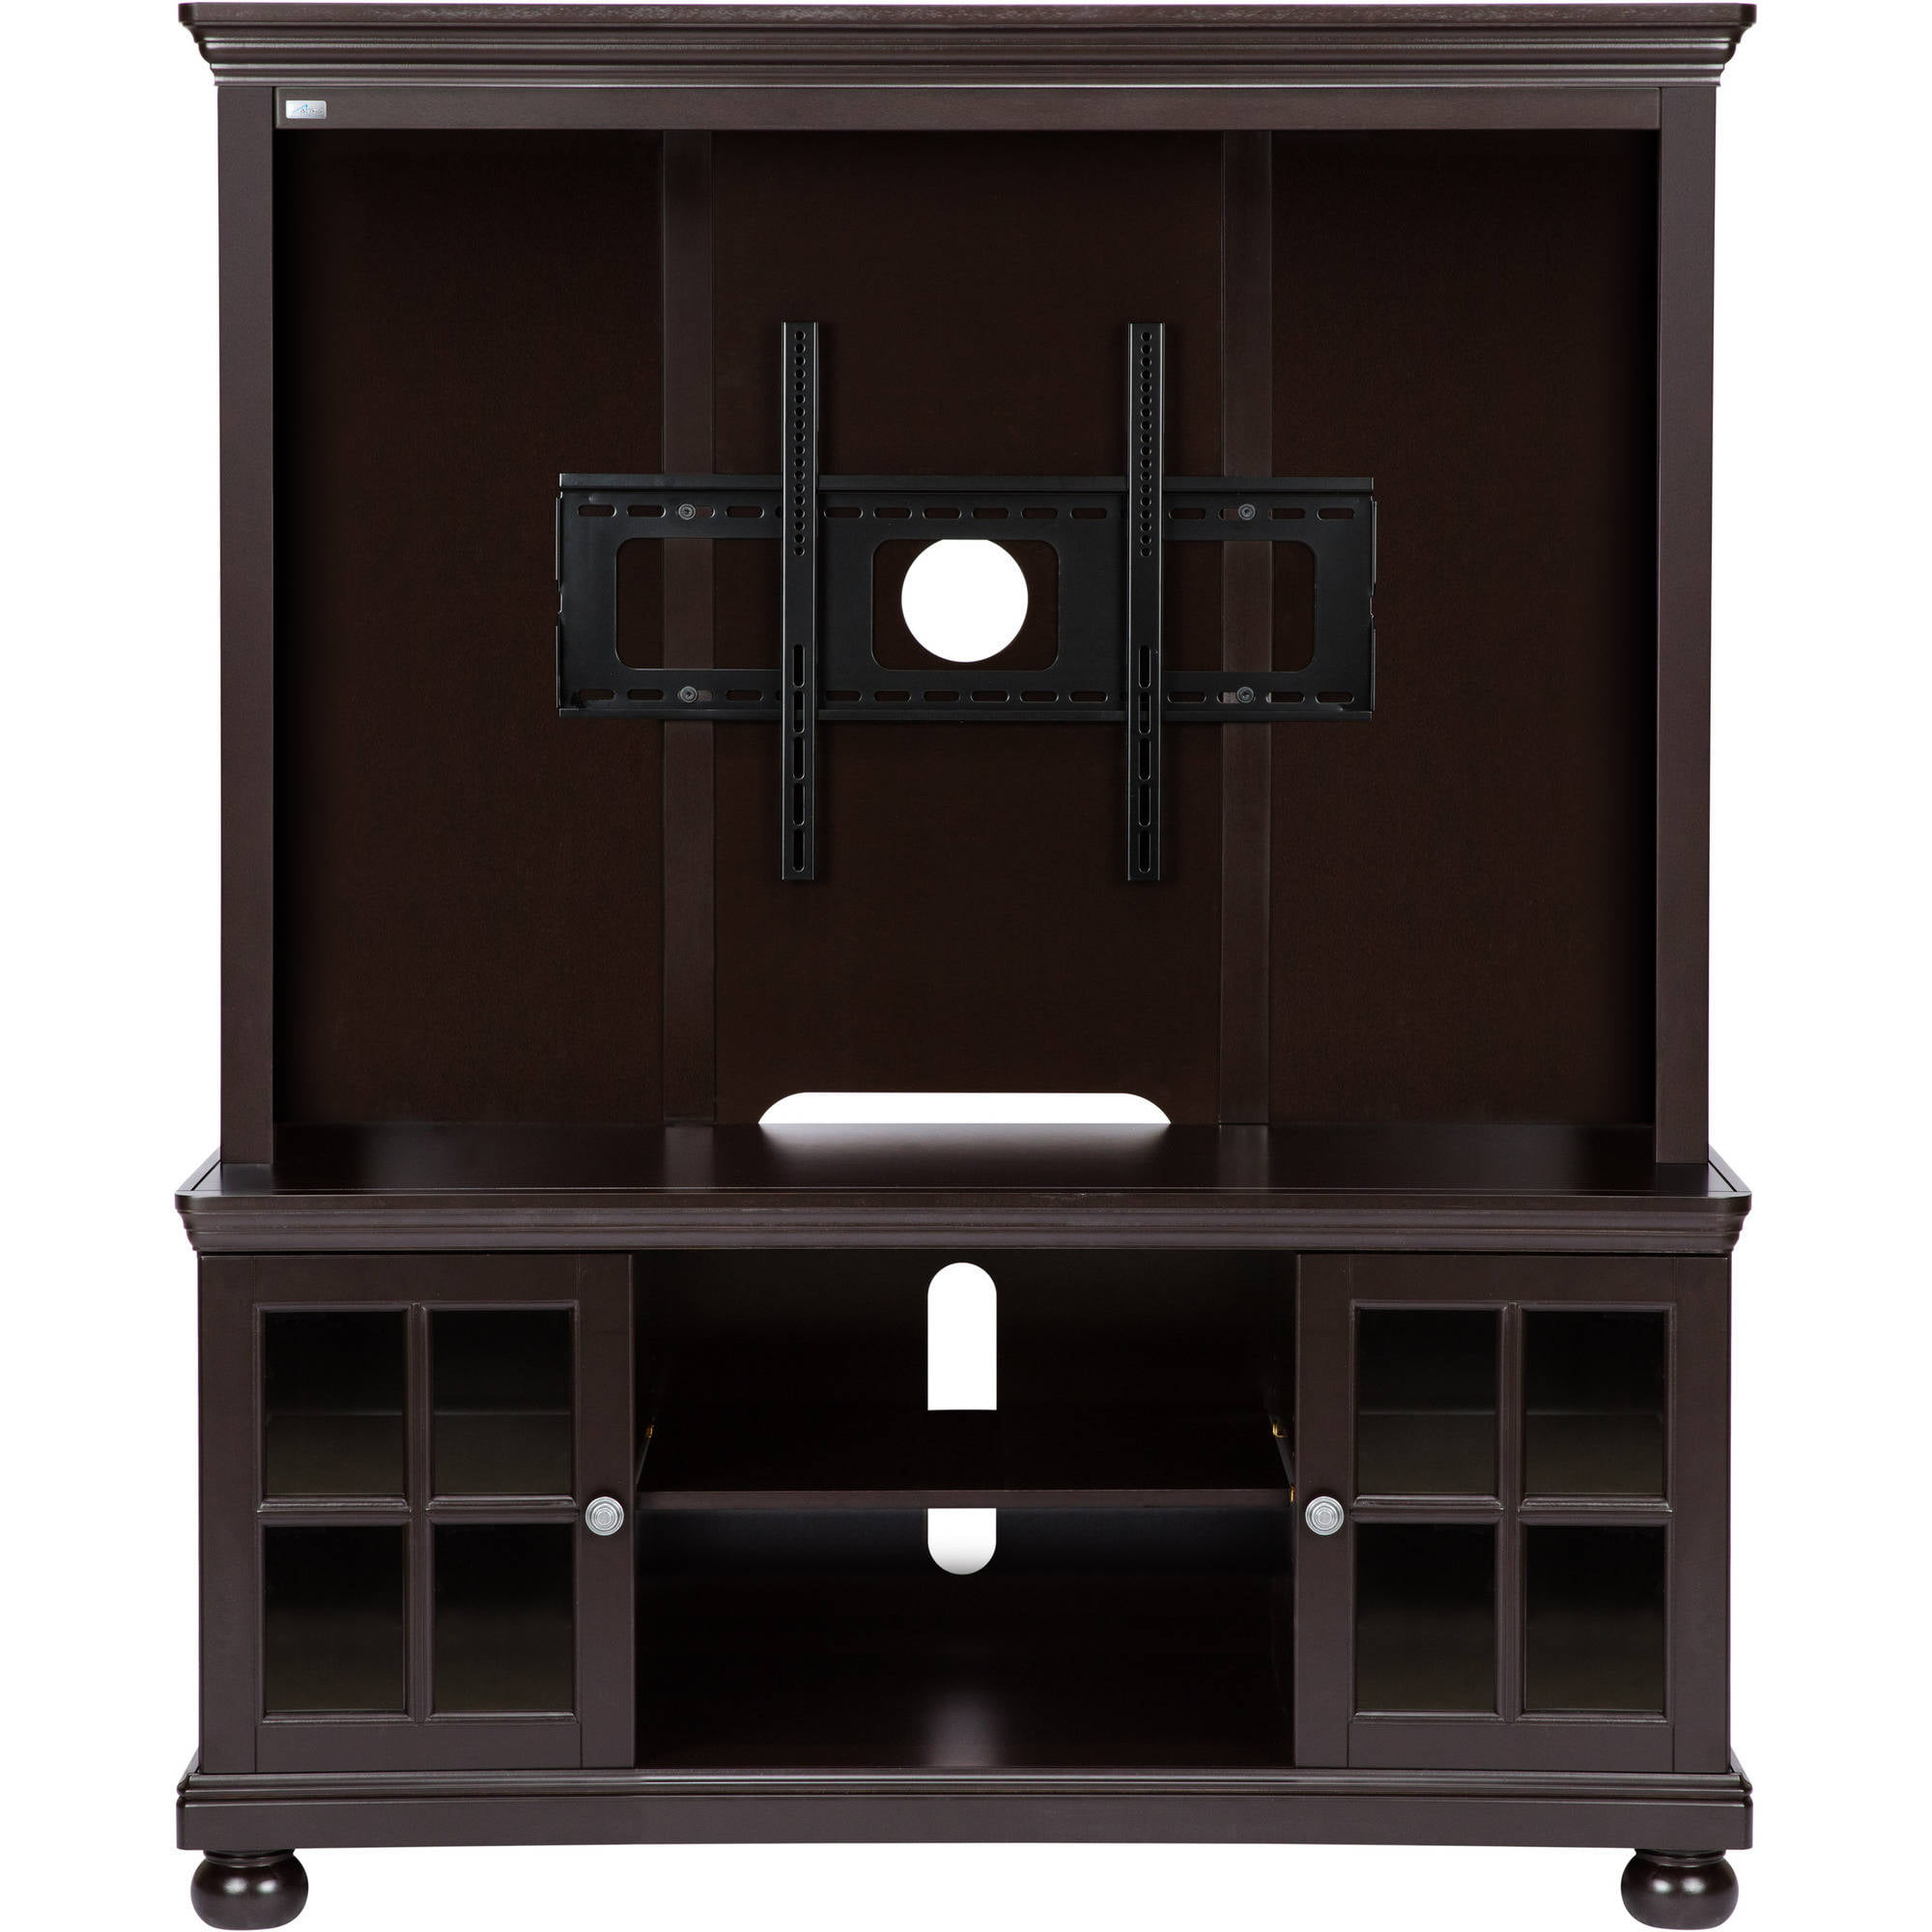 Better Homes And Gardens Espresso Tv Stand With Hutch For Tvs Up To 50 Ebay